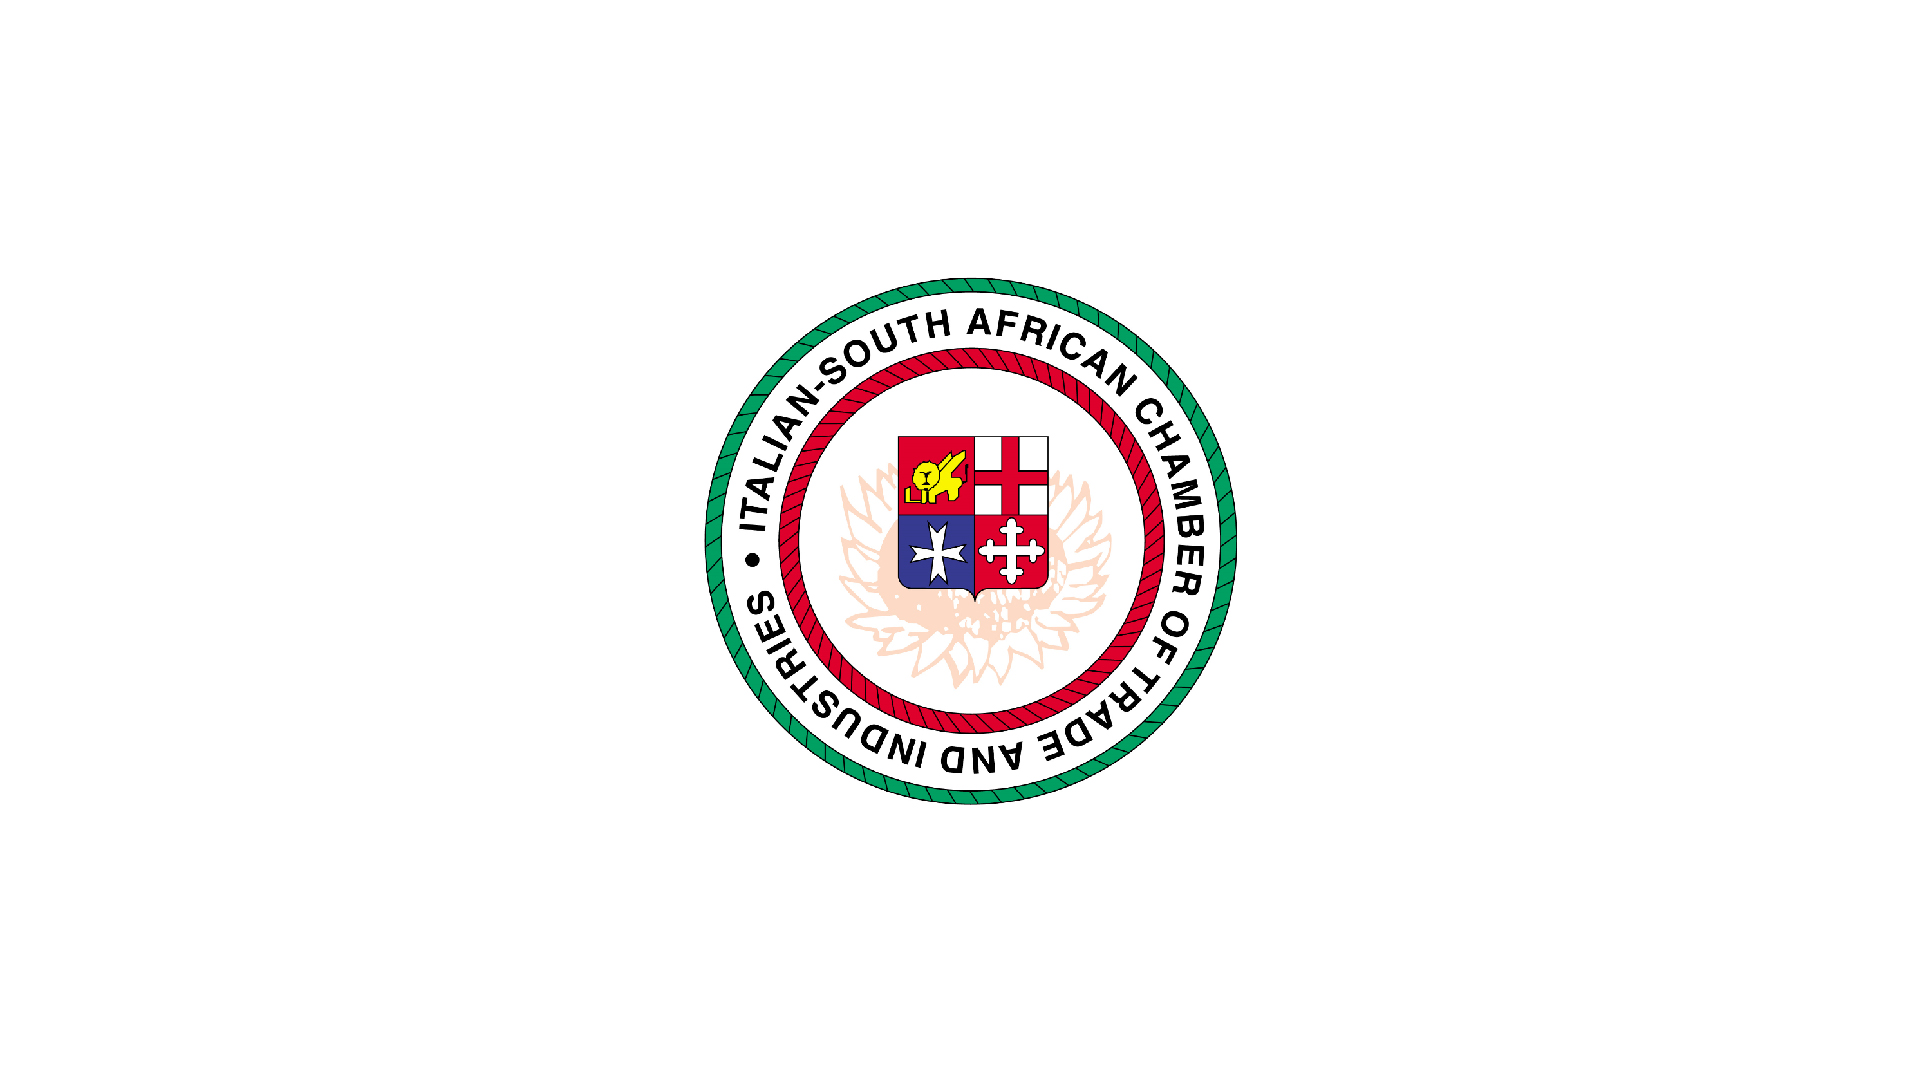 The Italian Chamber of Commerce South Africa Improves Every Aspect of Member Experience with Glue Up